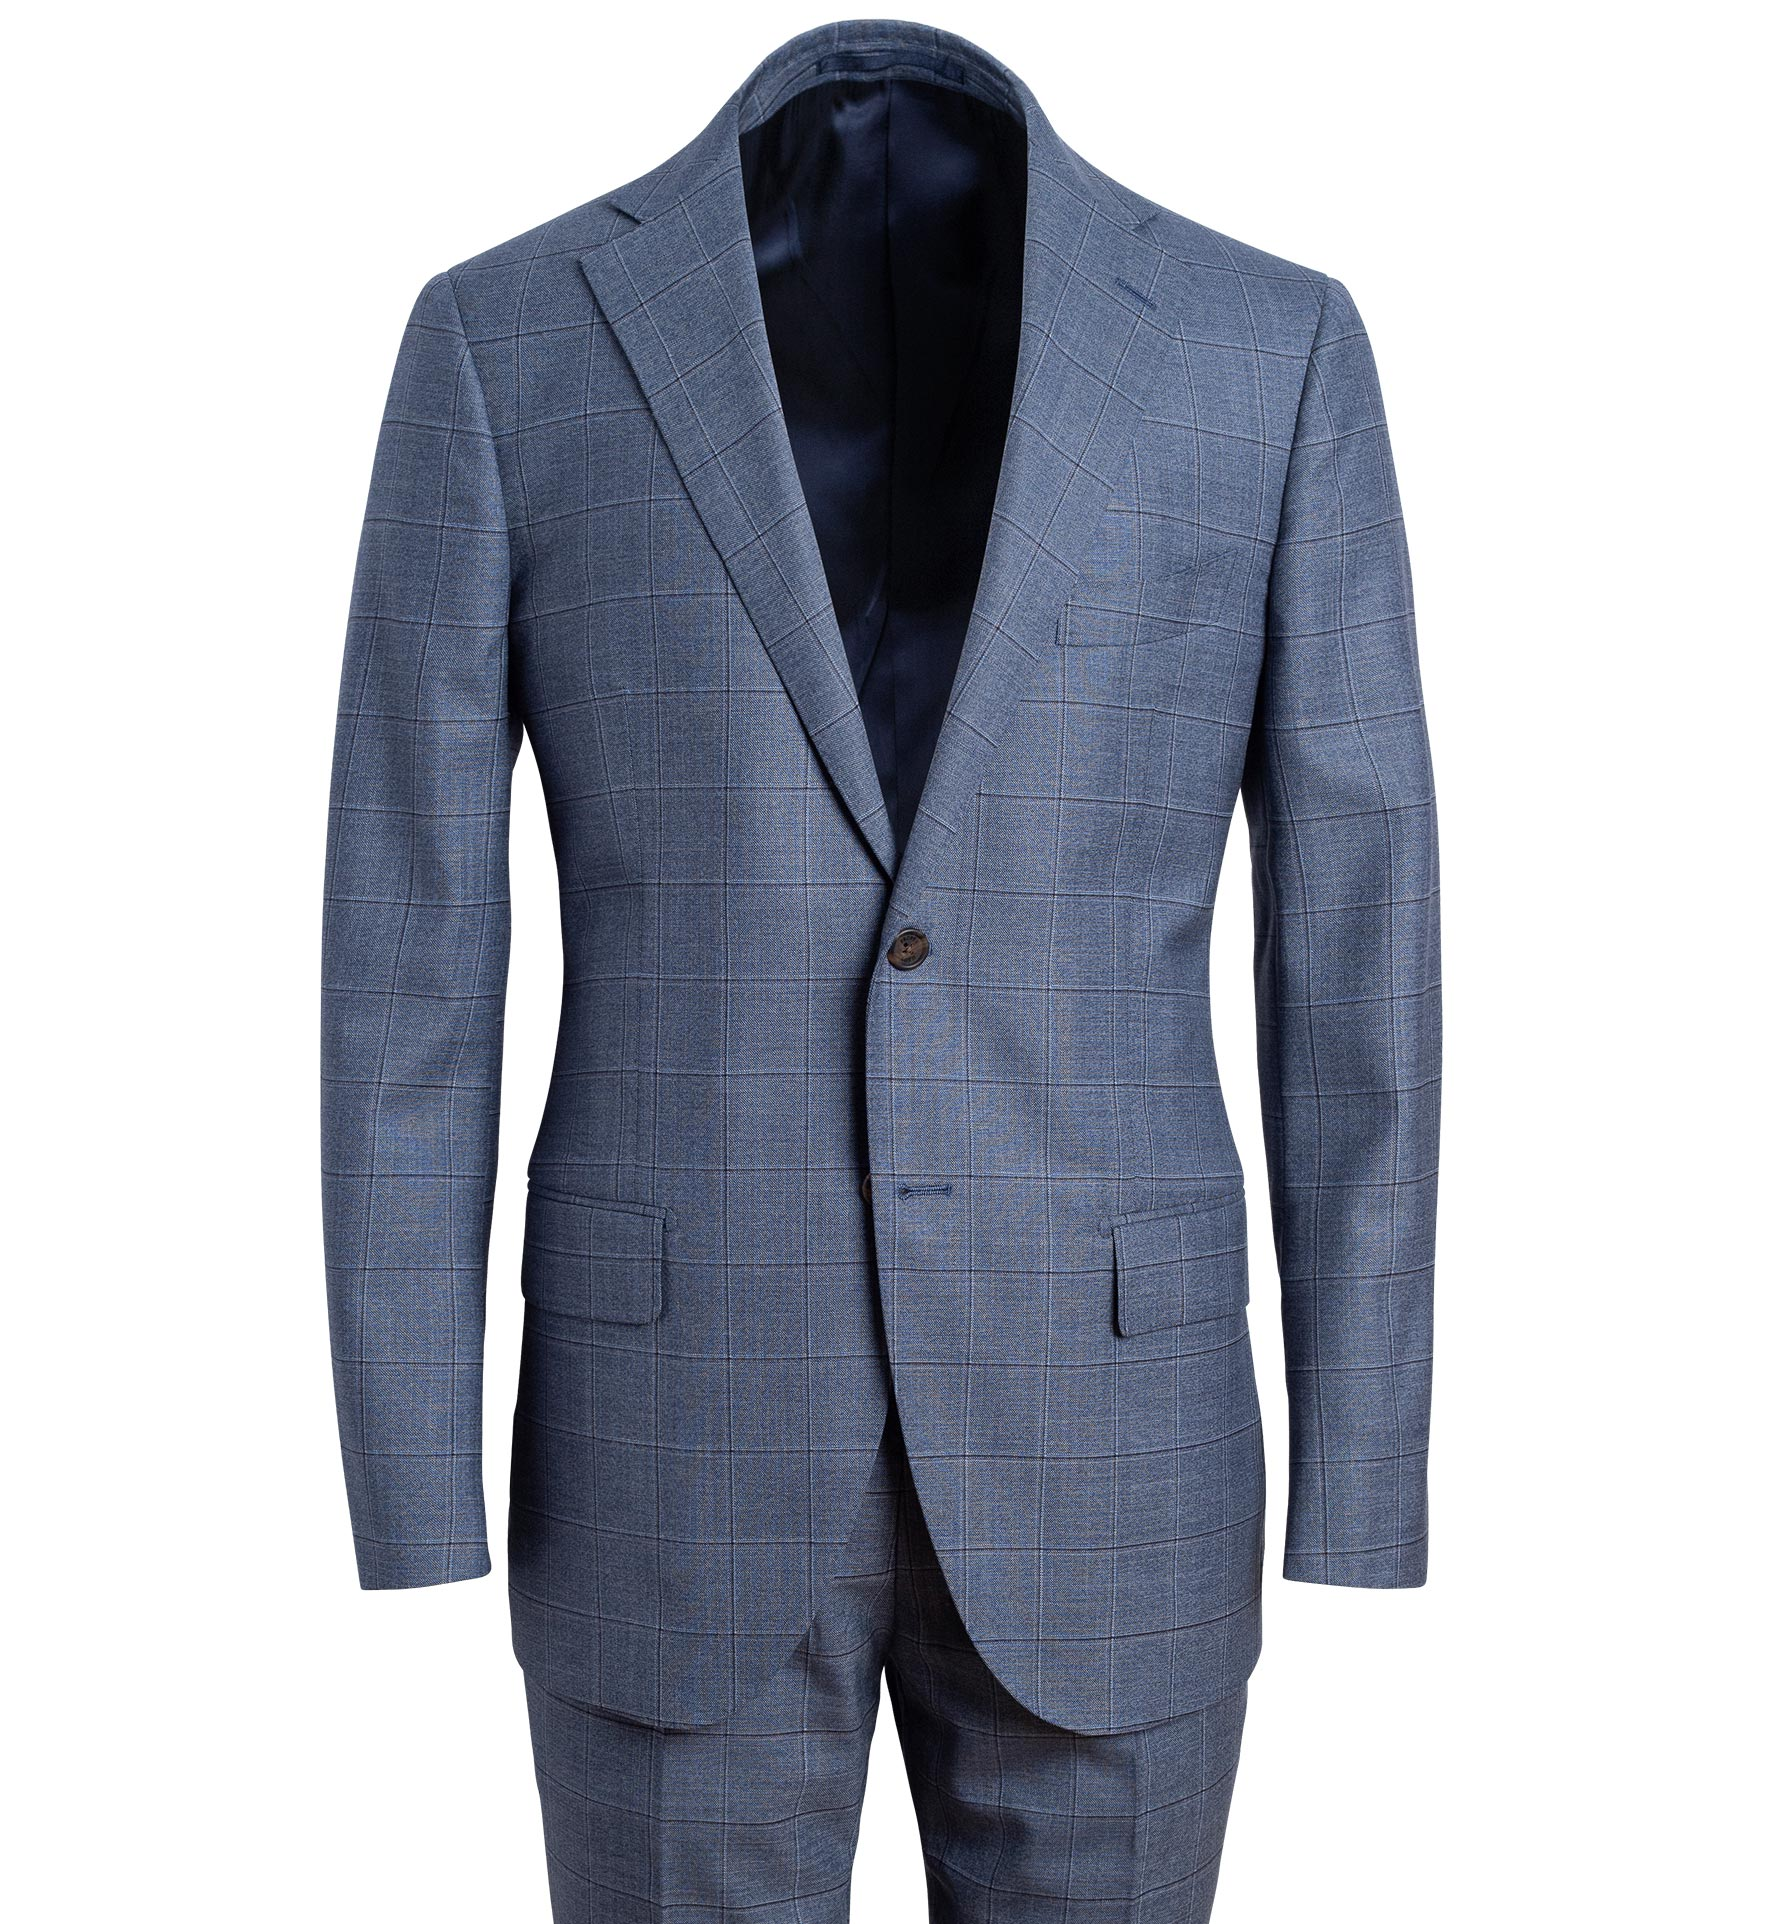 Zoom Image of Allen Light Slate S130s Windowpane Suit